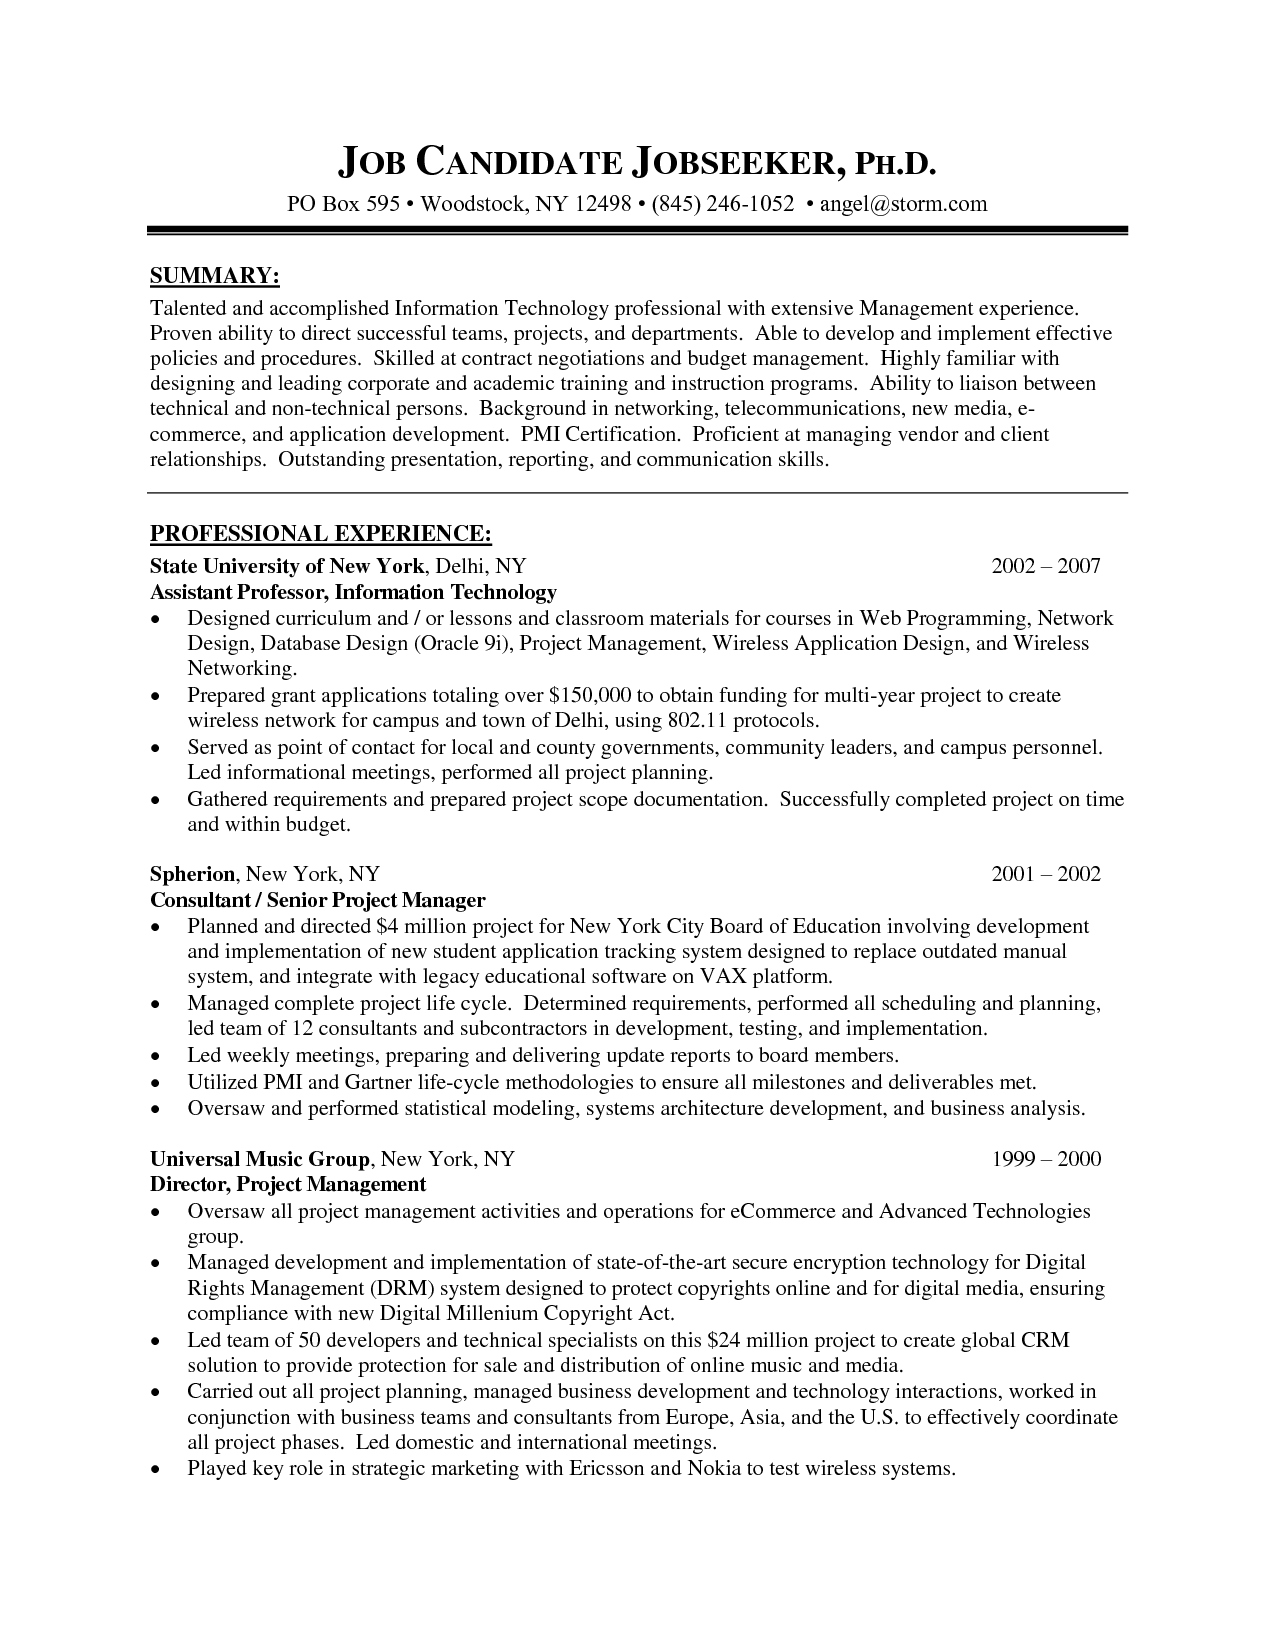 manager resume free sample senior project with summary examples compare writing services find local - Manager Resume Samples Free